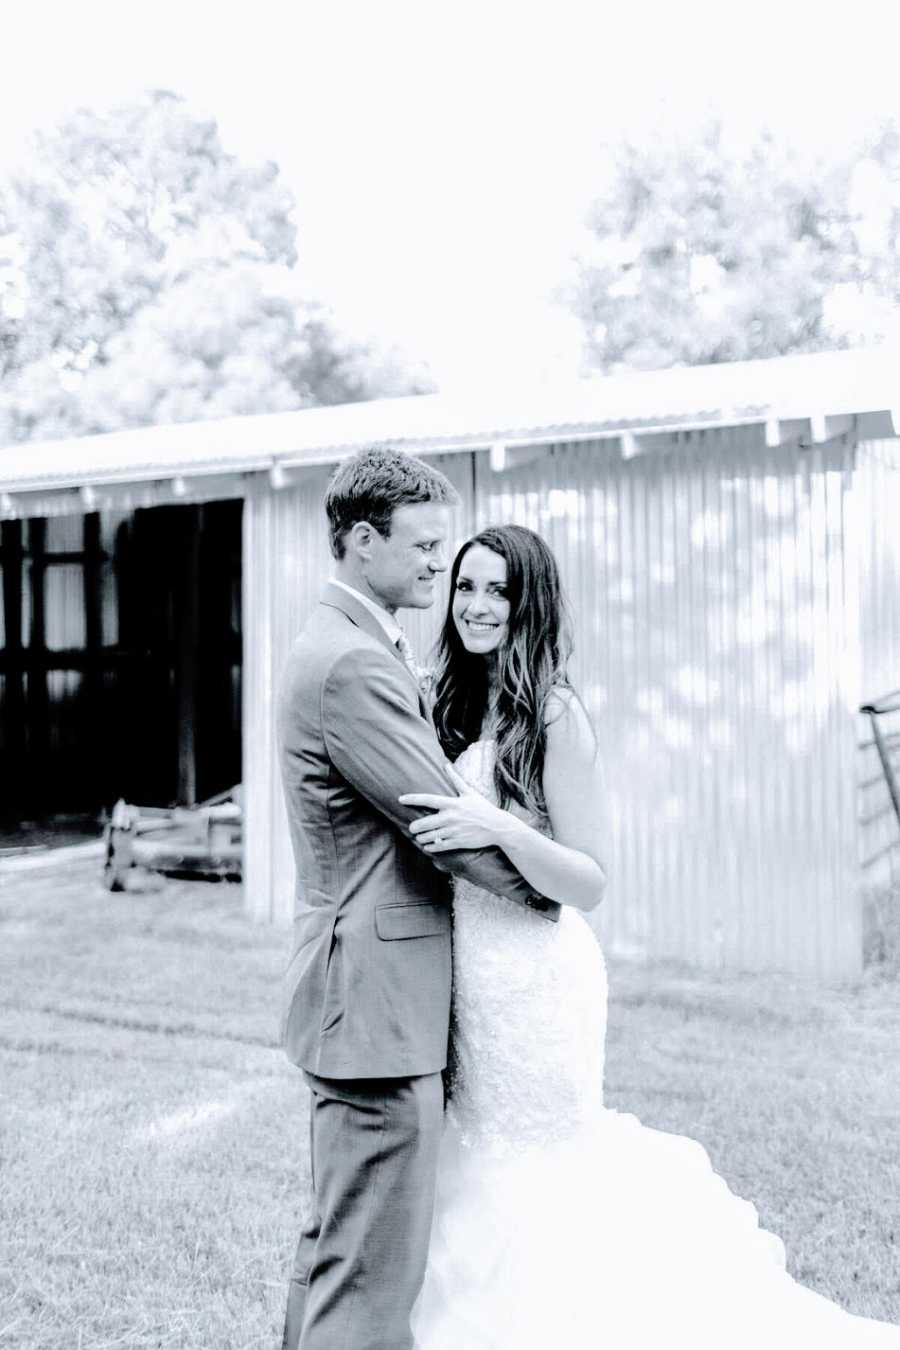 A bride and groom stand together outside a barn